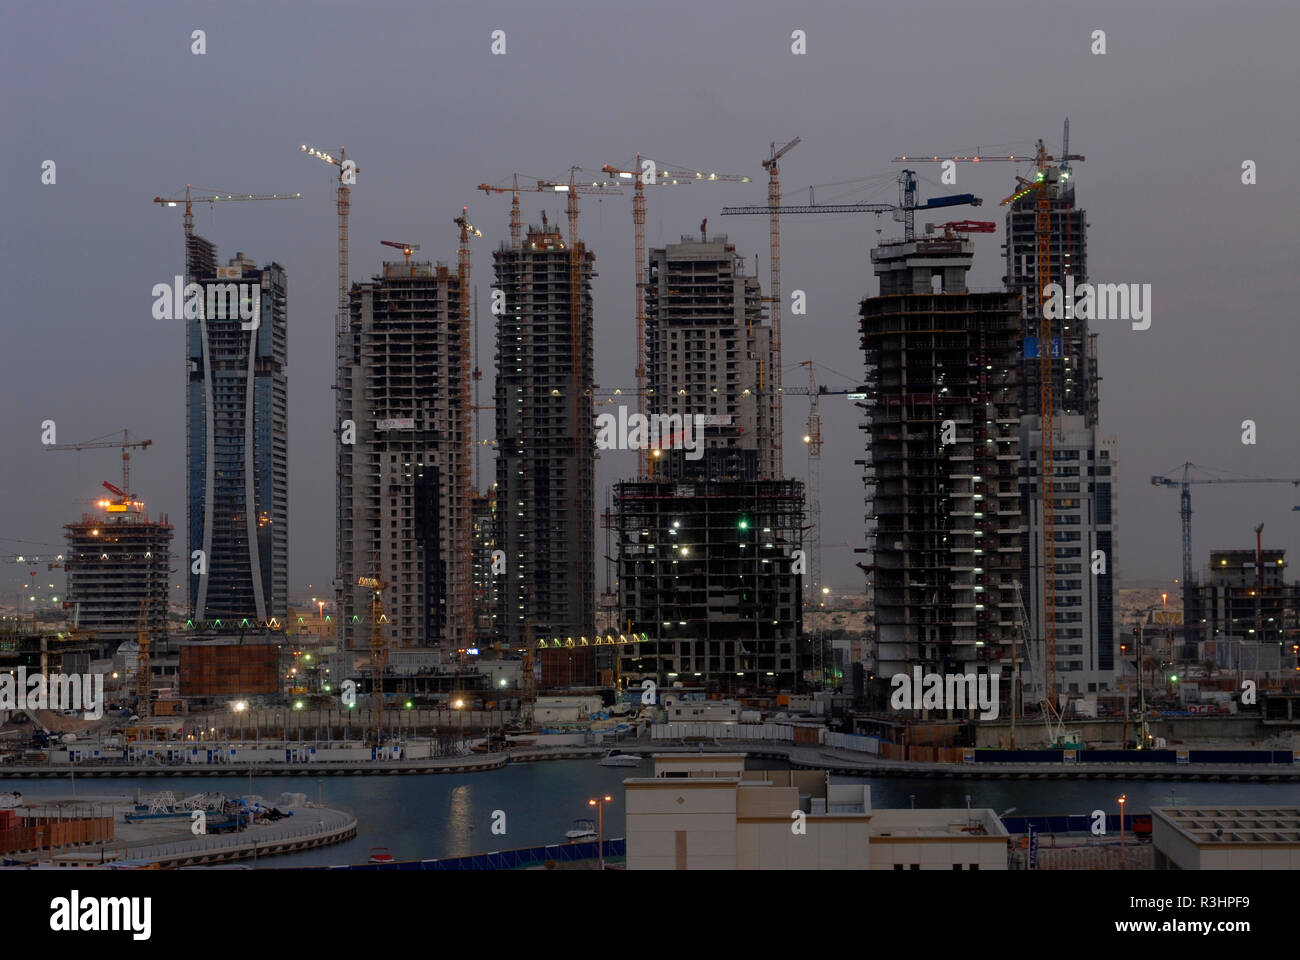 dubai construction site - Stock Image